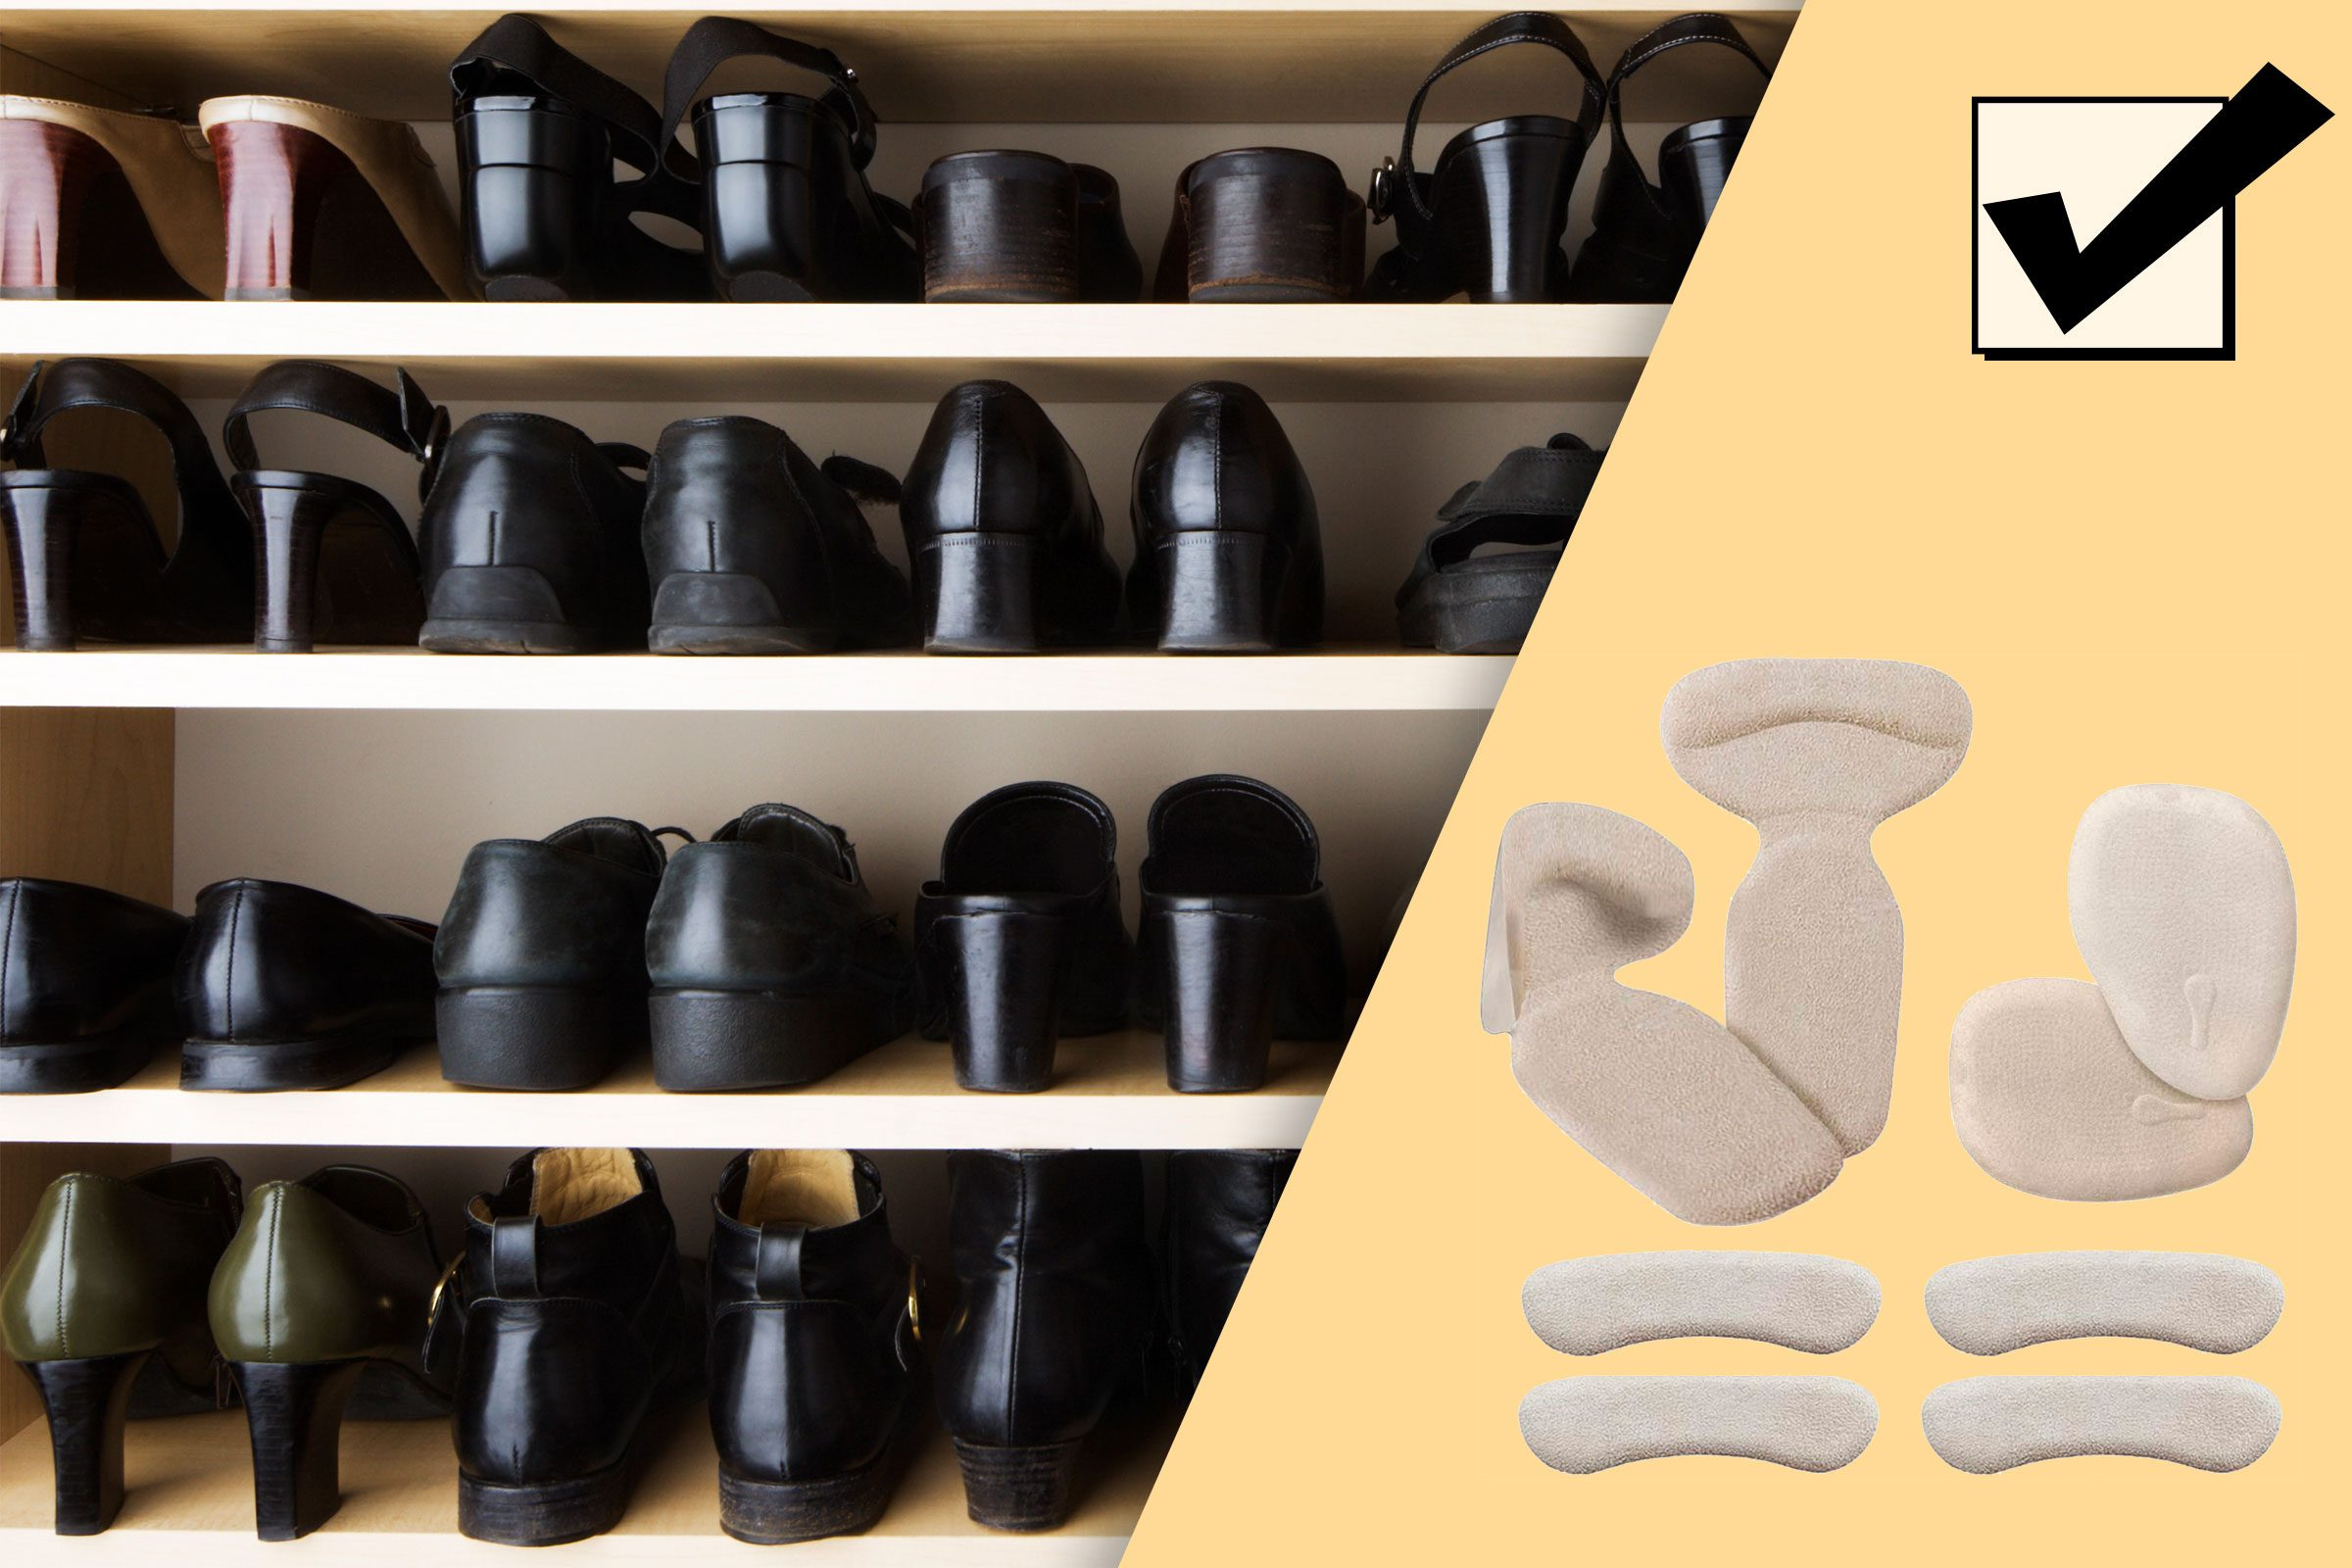 shoes lined up in a closet; and suggested product